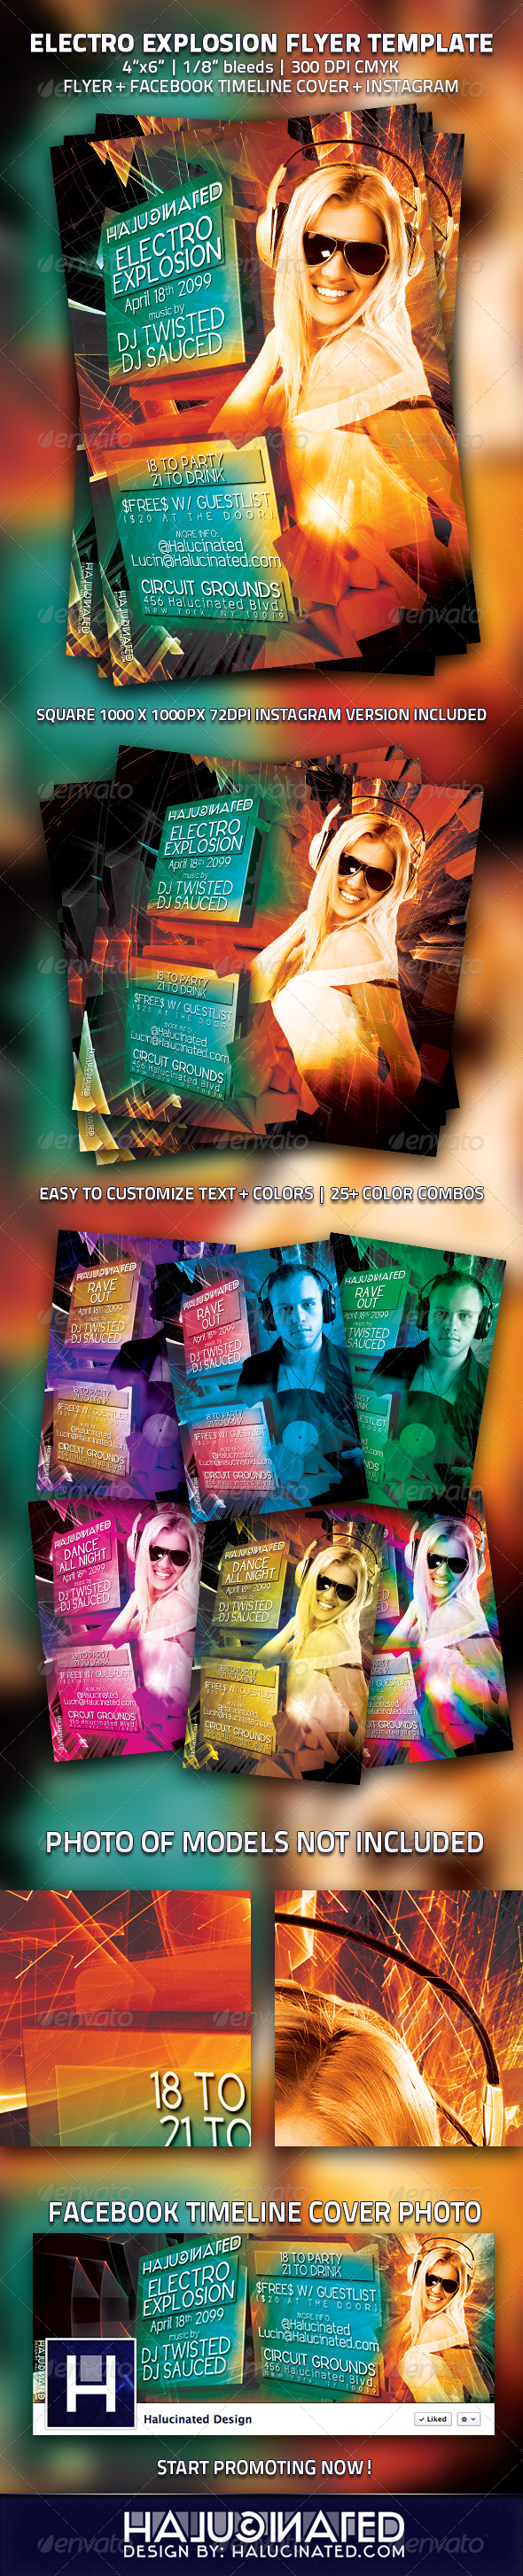 Electro Explosion Party Flyer Template - Events Flyers